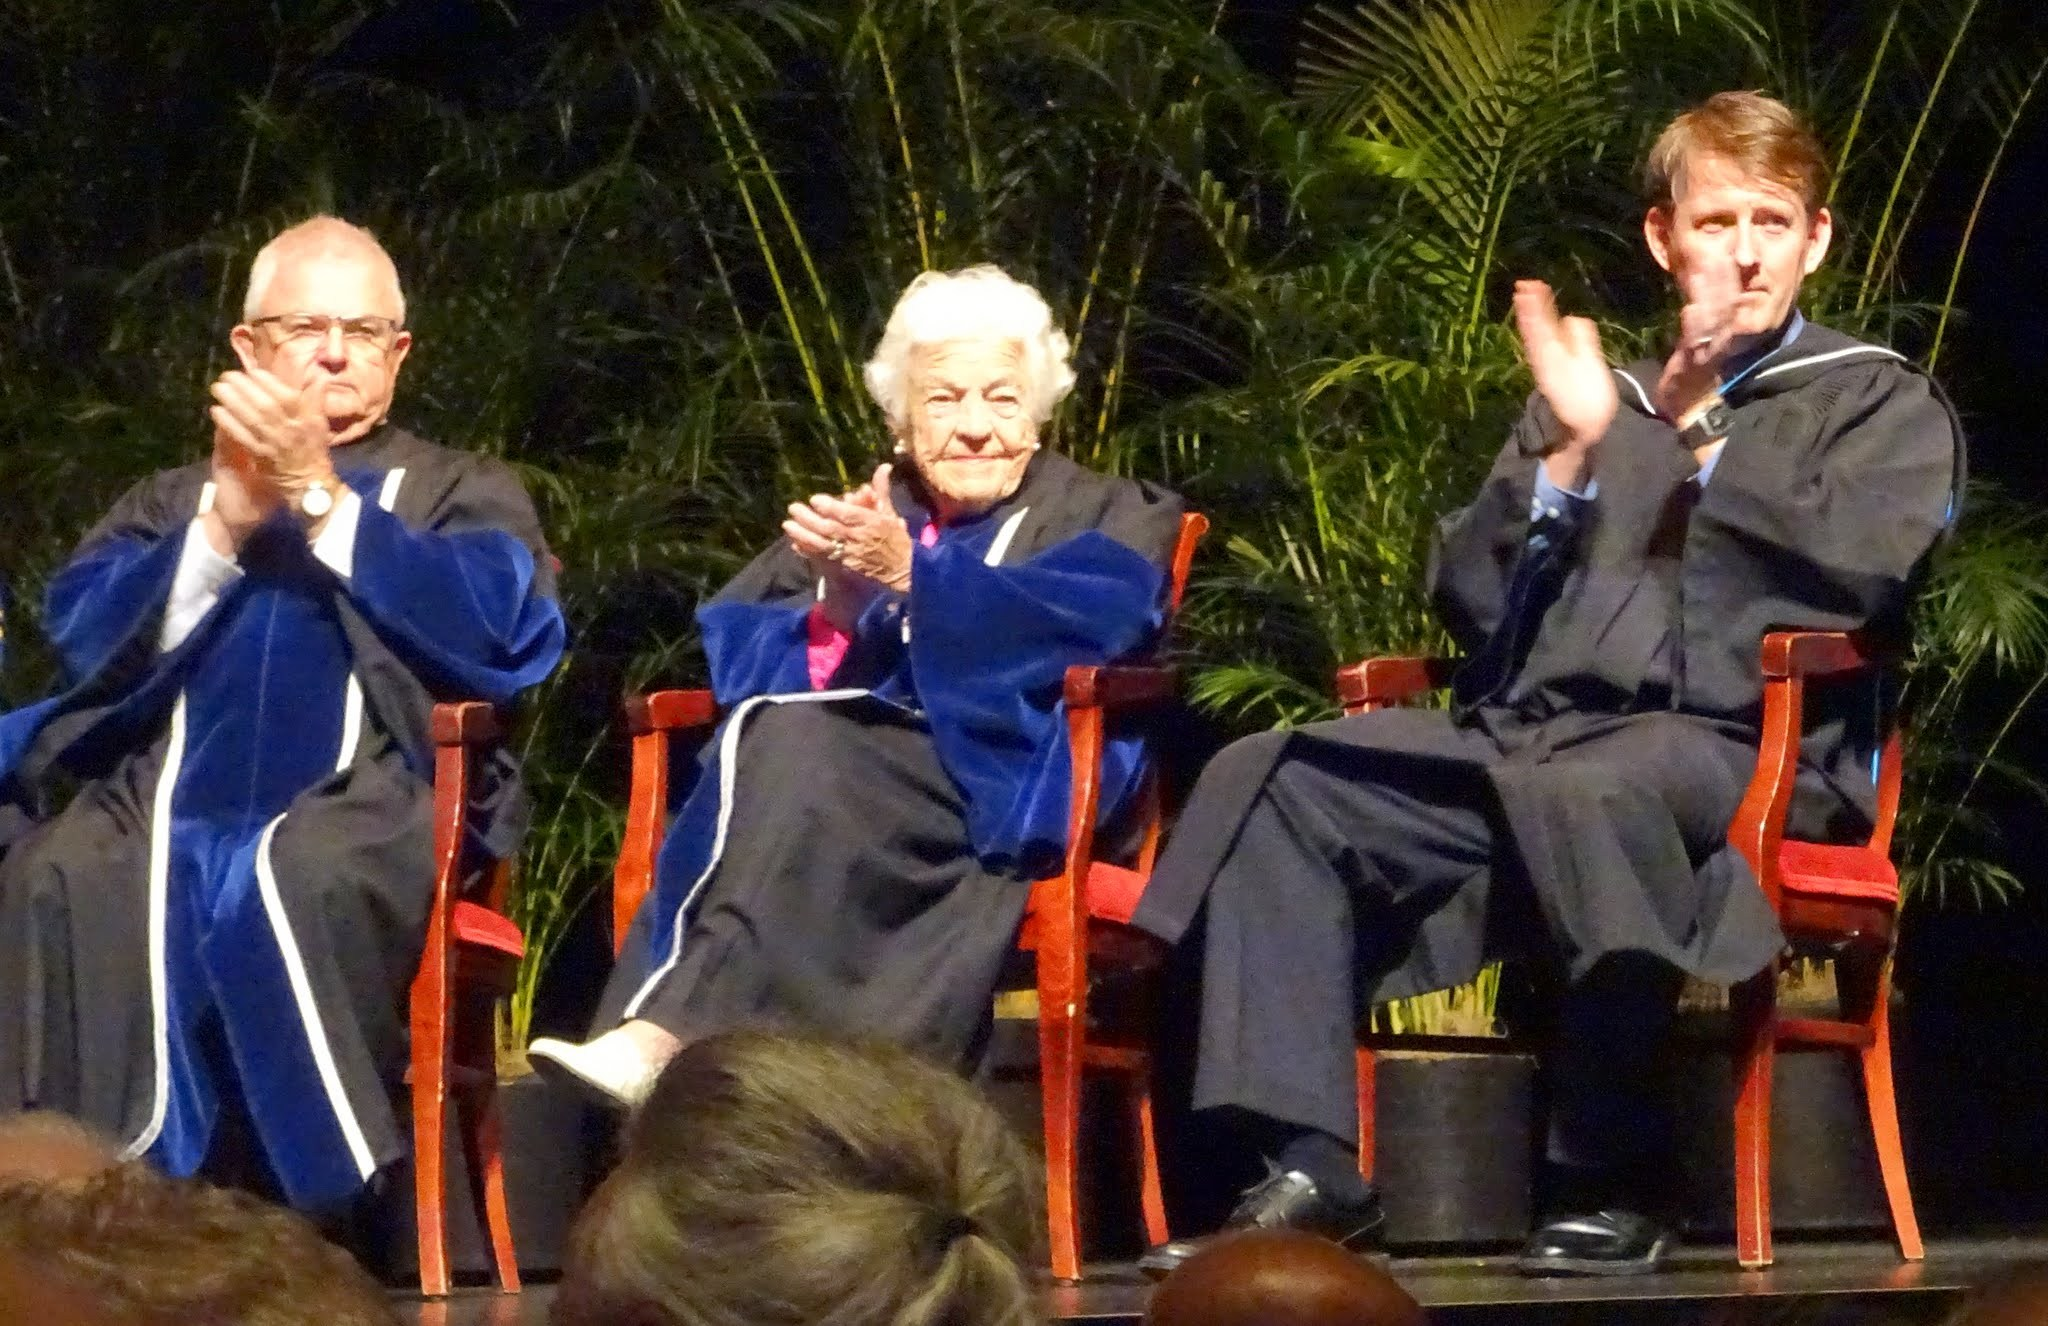 Bryan Dawson (Chair, Sheridan Board of Governors), Hazel MCCallion and Jamie King (General Manager, Sheridan Student Union)